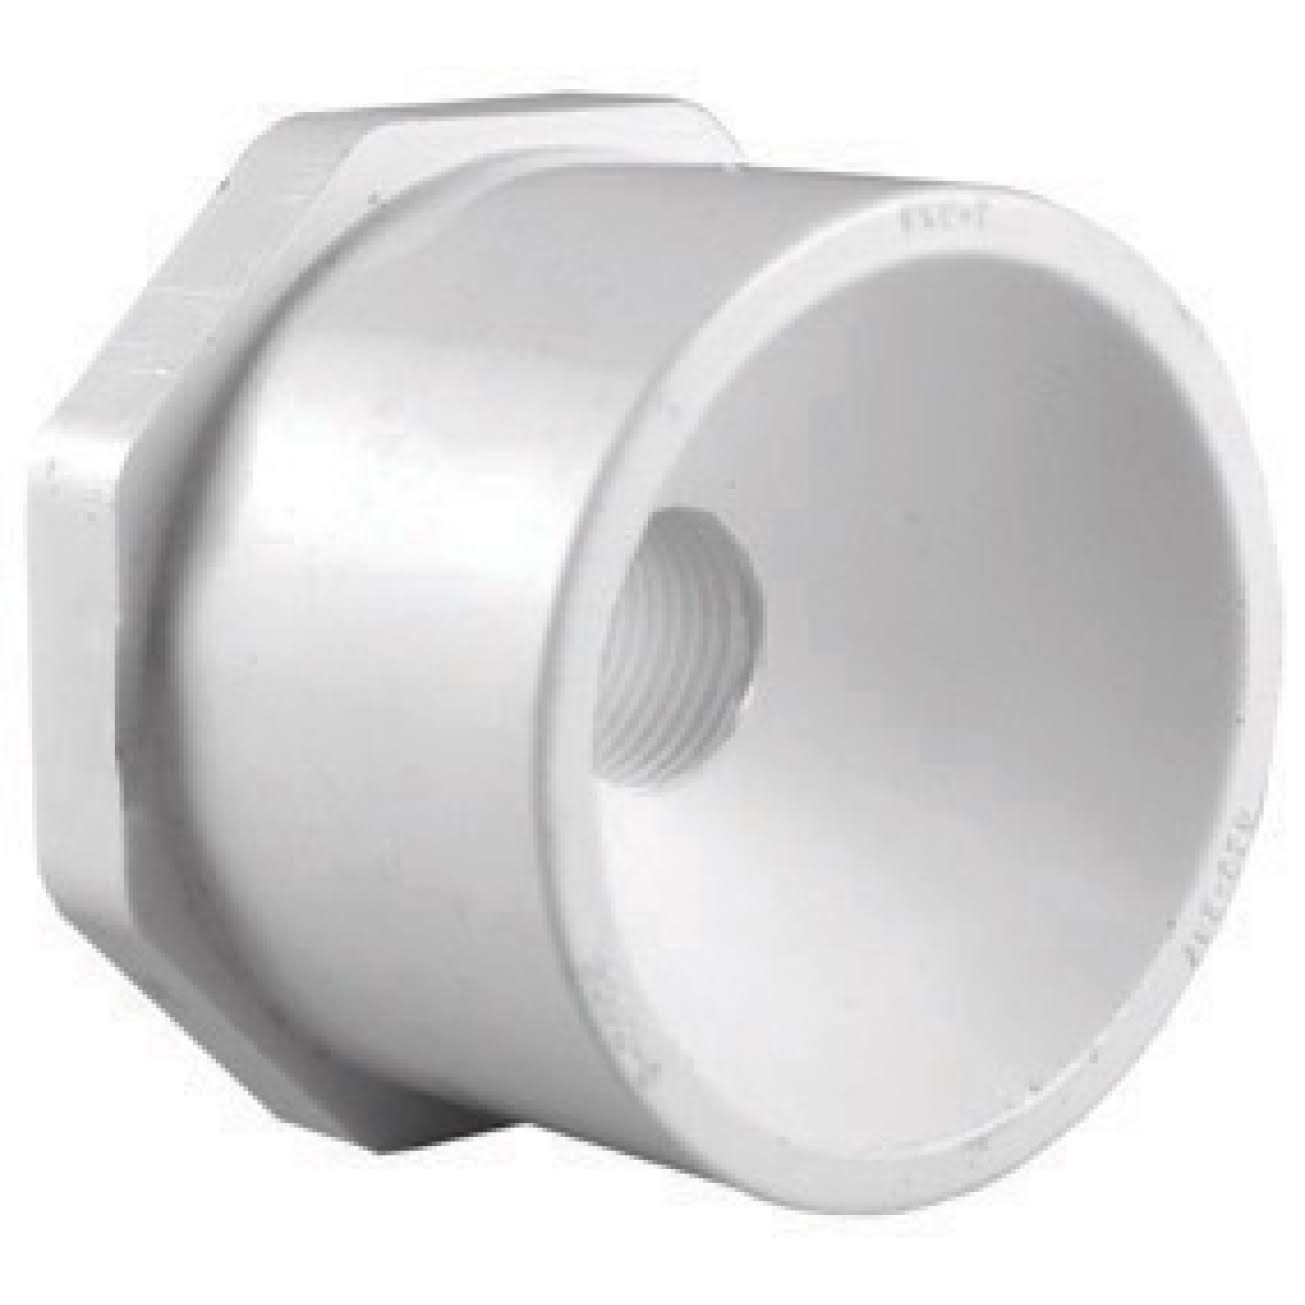 "Charlotte Pipe PVC Reducing Bushing - 2"" X 1 1/2"", White"